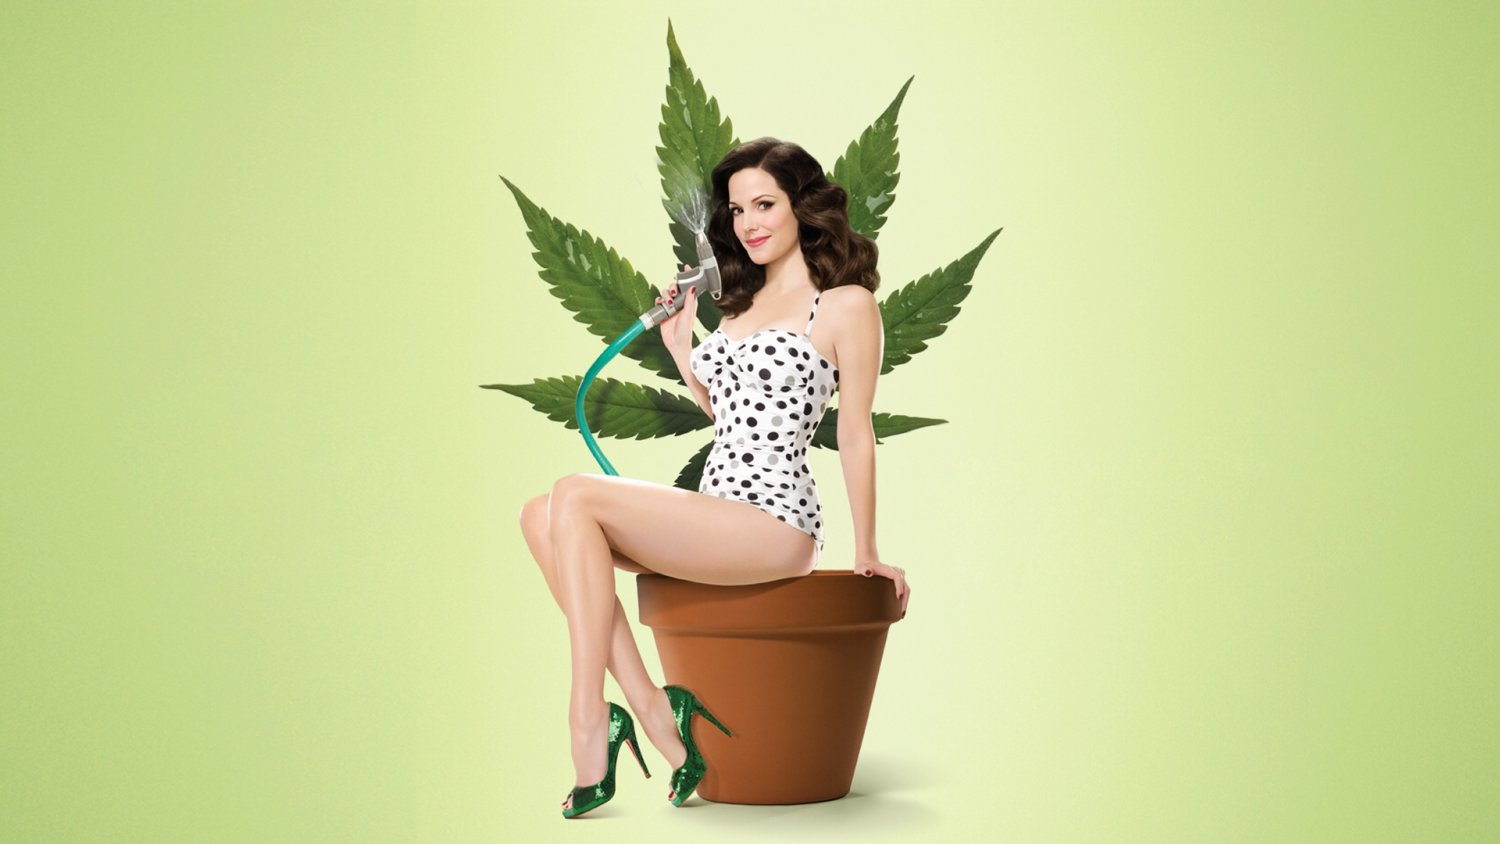 http://www.dvd-covers.org/d/200673-6/weeds1080.jpg